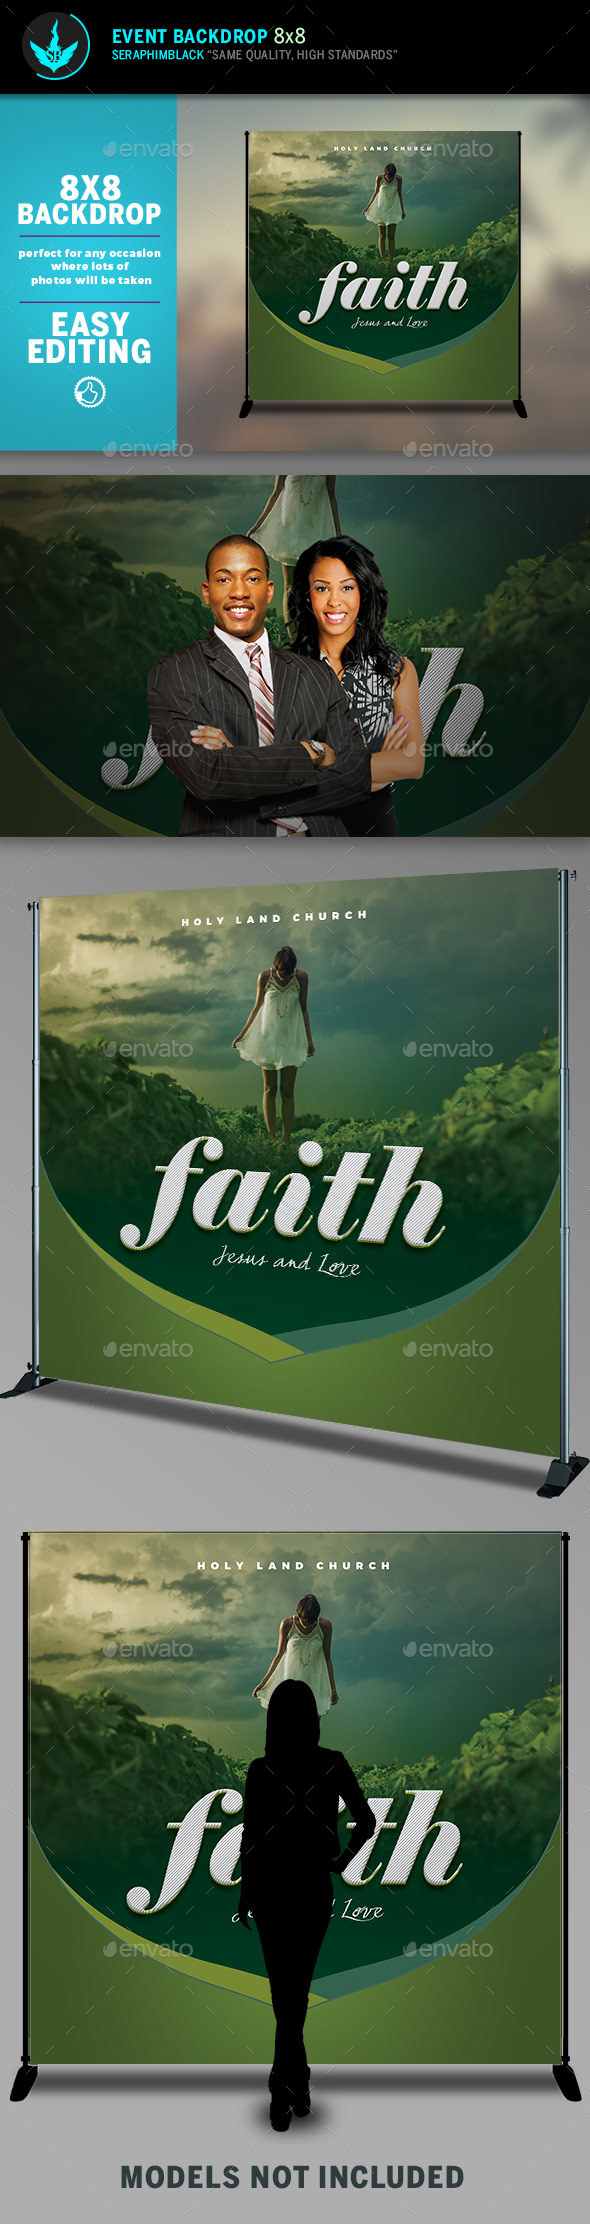 GraphicRiver Faith 8x8 Event Backdrop Template 20484838